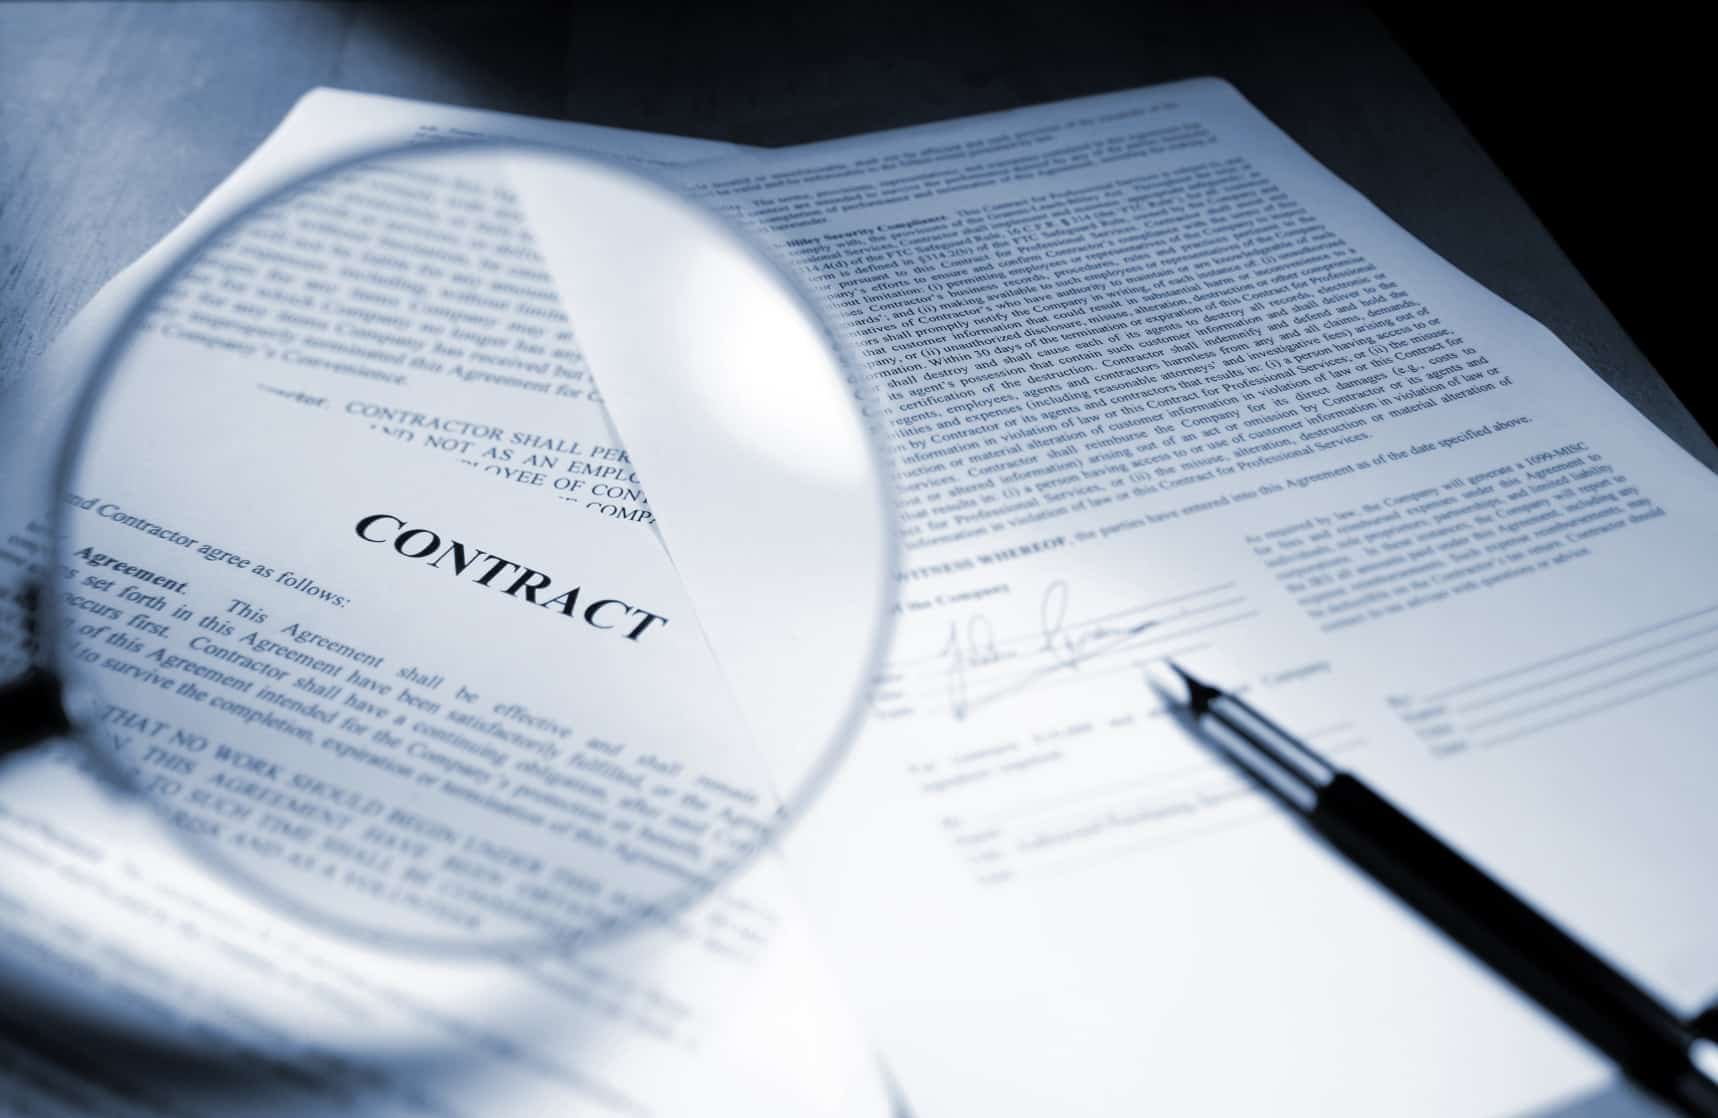 Notarized means legal, binding, true? NO!